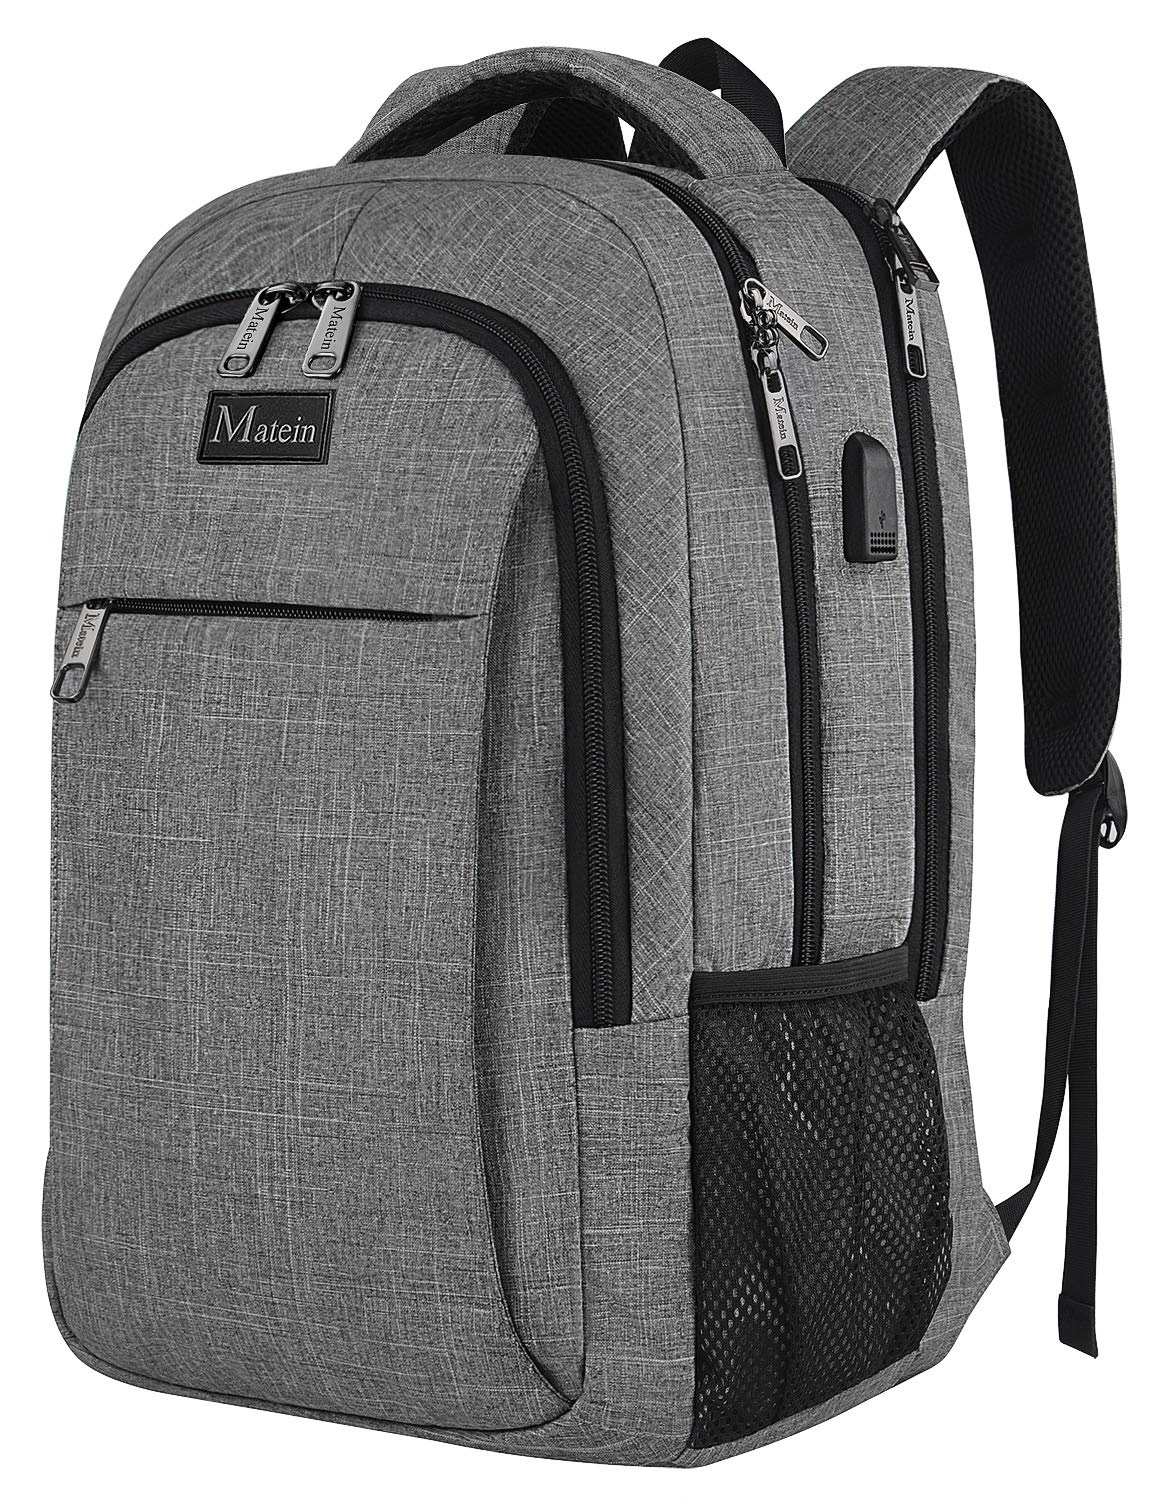 d78431dc7946 MATEIN Mens Anti-Theft Waterproof Travel Laptop Backpack with USB Charging  Port Fits 15.6 Inch Laptops Grey